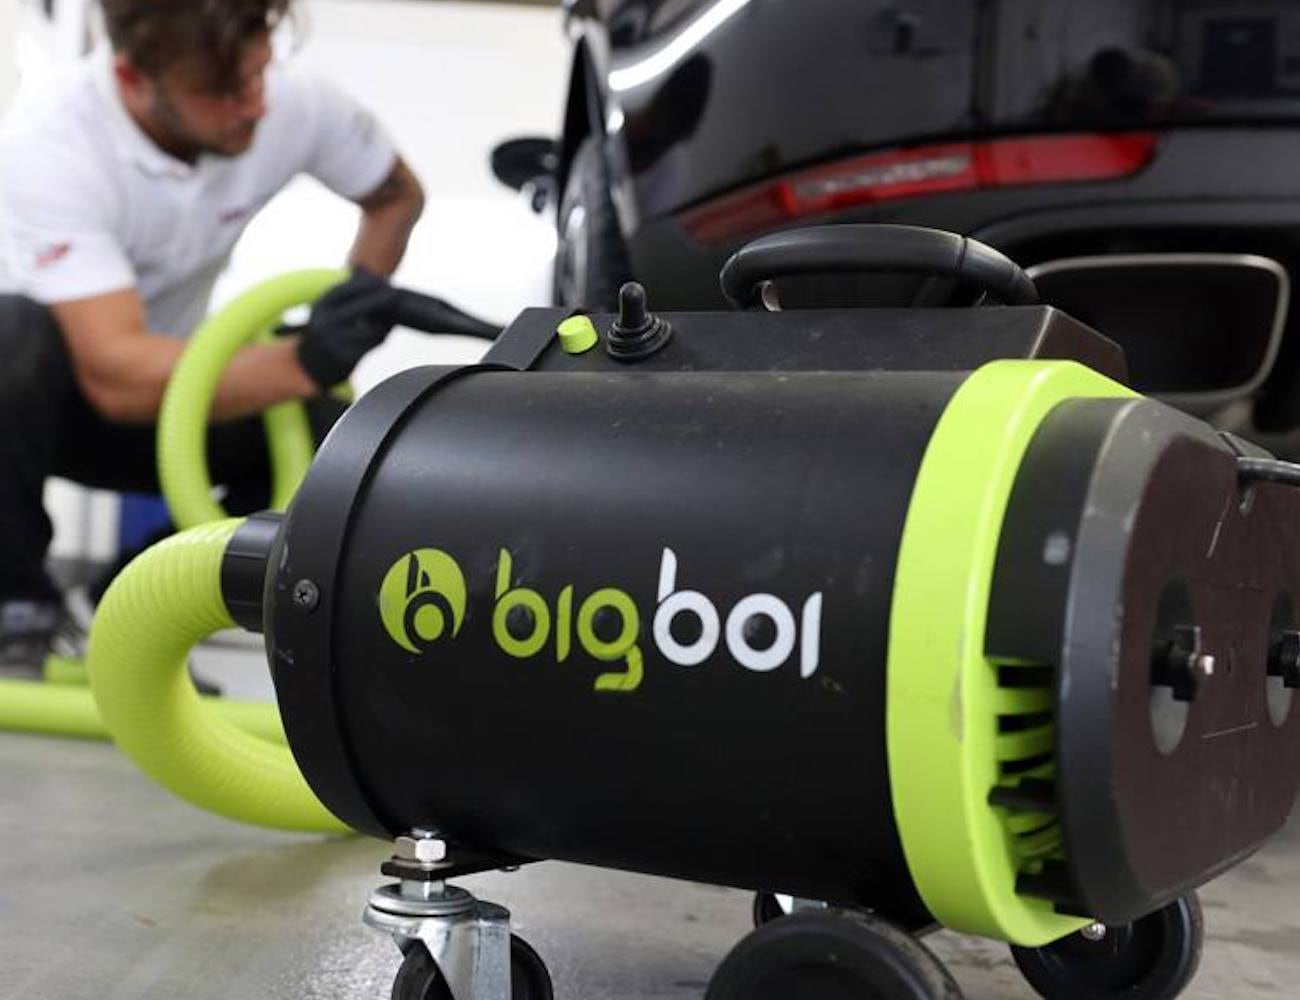 BigBoi Blowr Mini Miniature Air Blower is great for blowing dust and dirt from your car